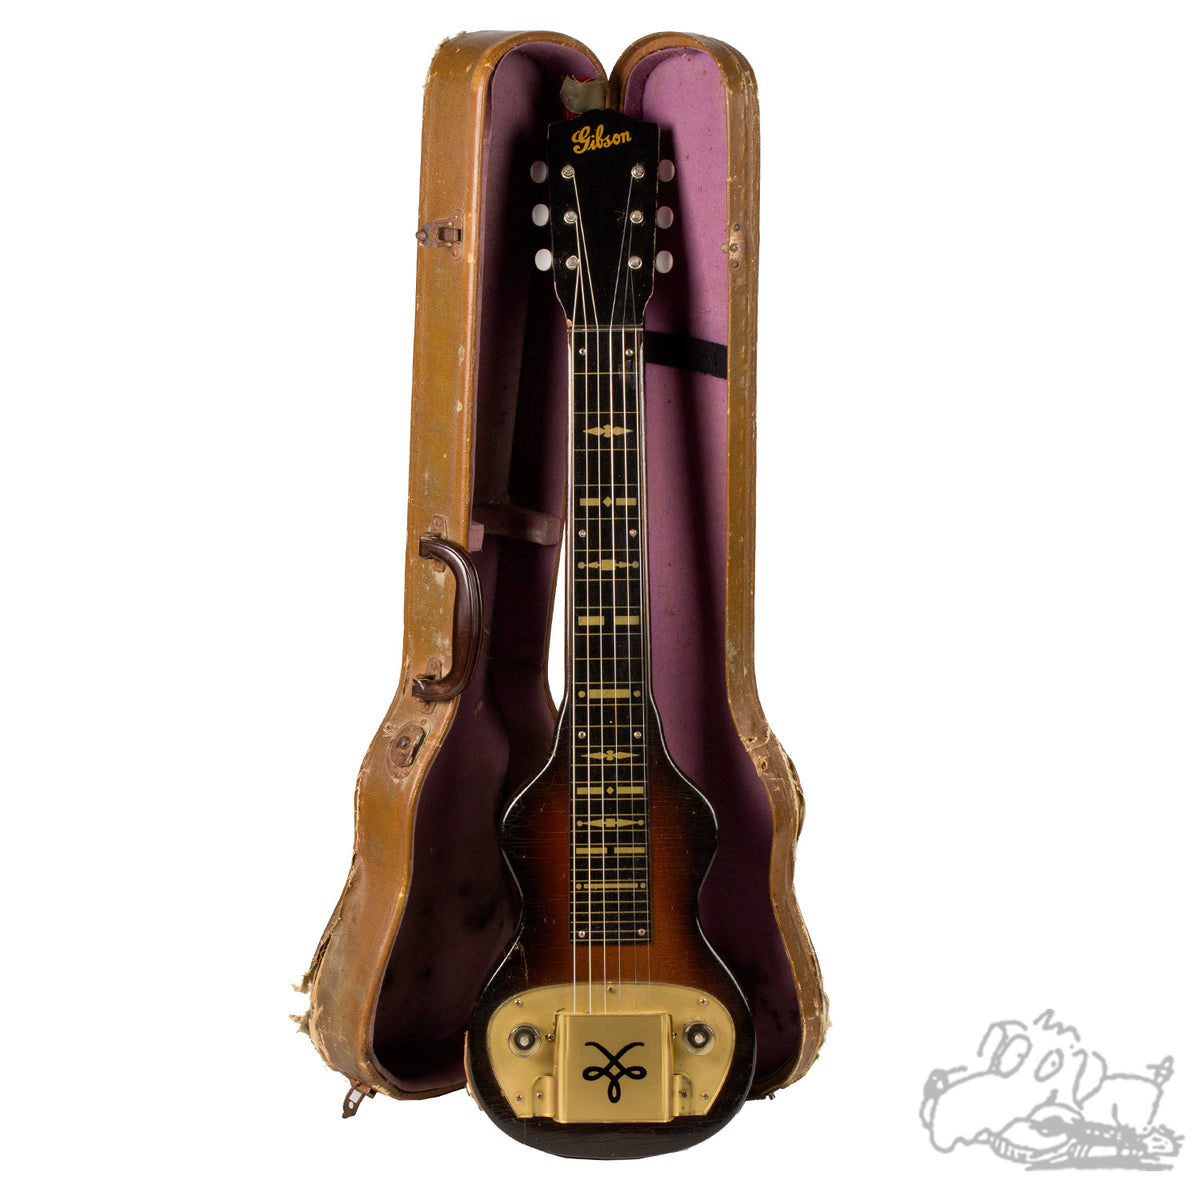 1940s Gibson BR-4 Lap Steel